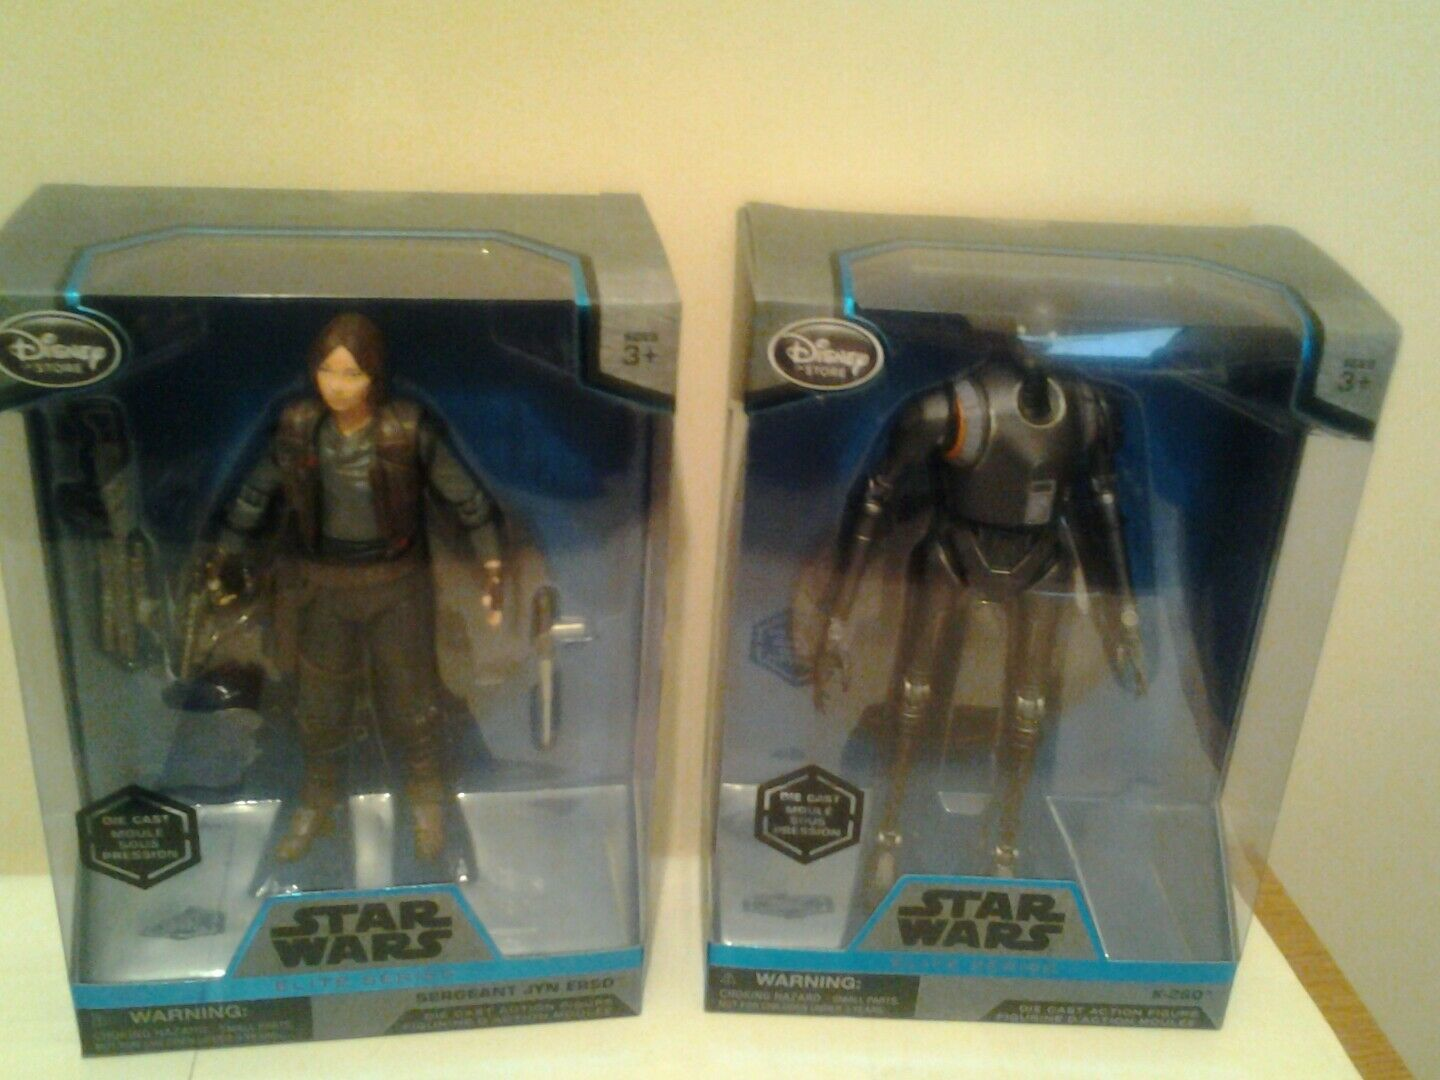 Star wars elite series die cast sergeant jyn erso and k-2SO figures